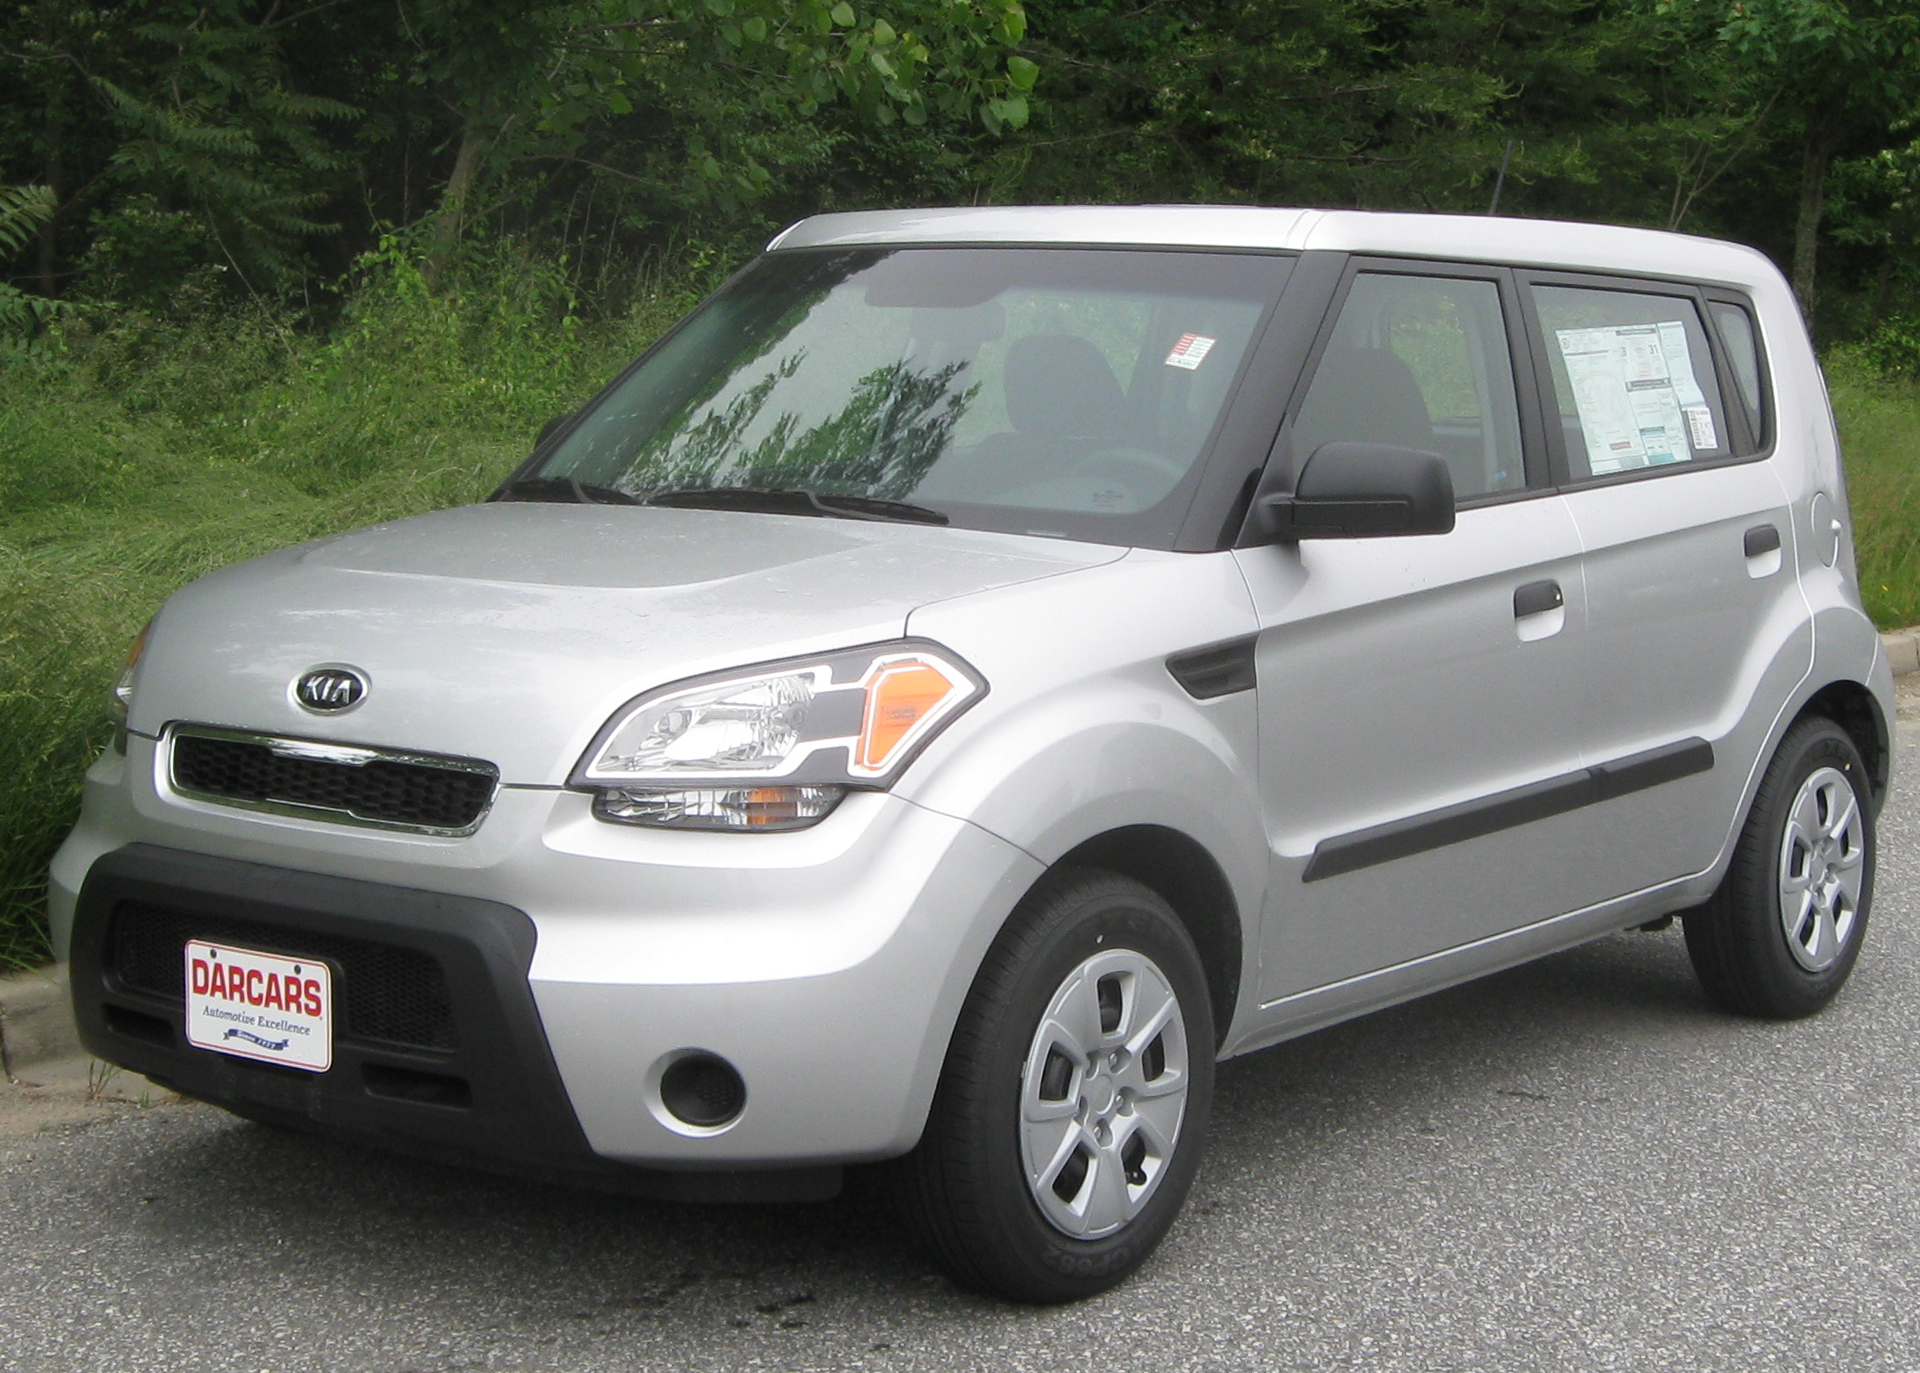 prices sale kia recalls paid price reviews soul car research